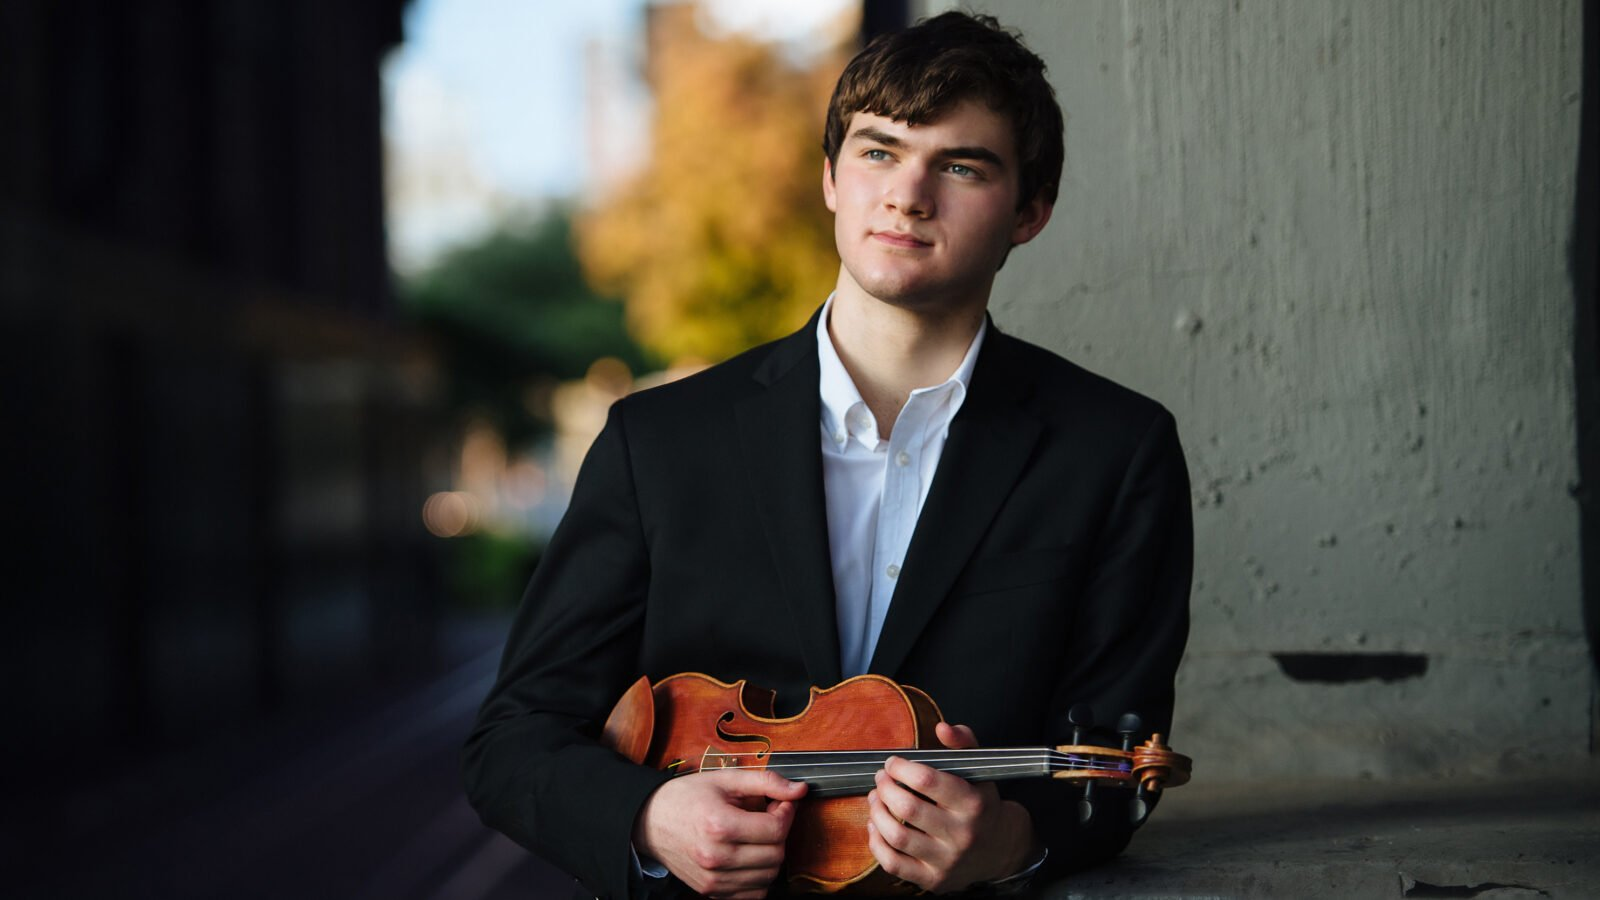 Violinist Nathan Meltzer, an 18-year-old Julliard student who has been loaned the recovered Stradivarius violin (Photo: Jiyang Chen)